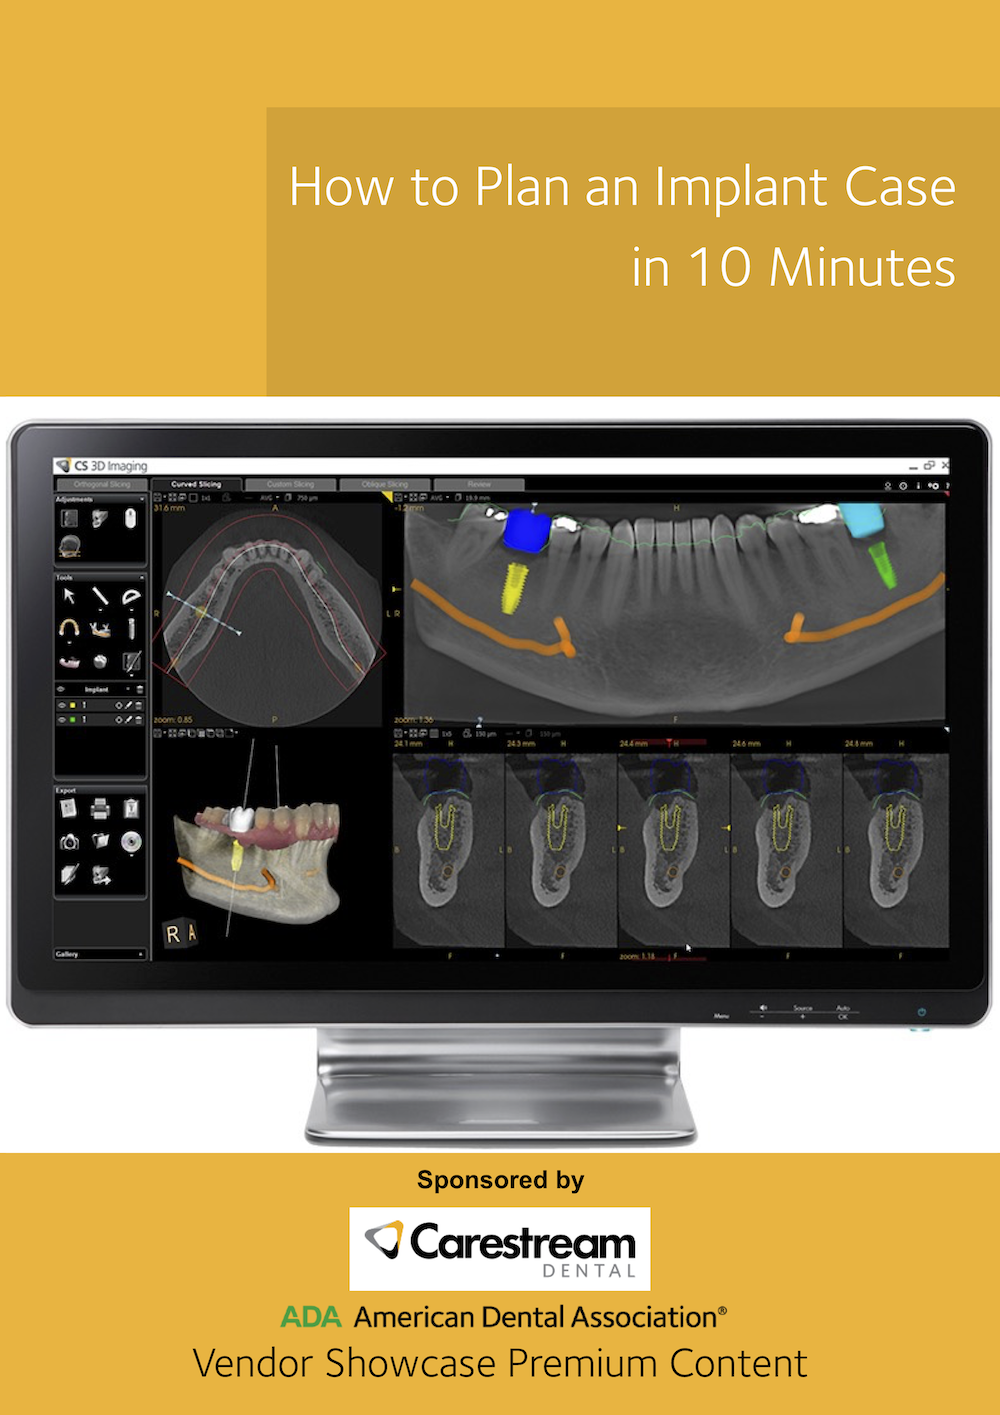 How to Plan an Implant Case in 10 Minutes